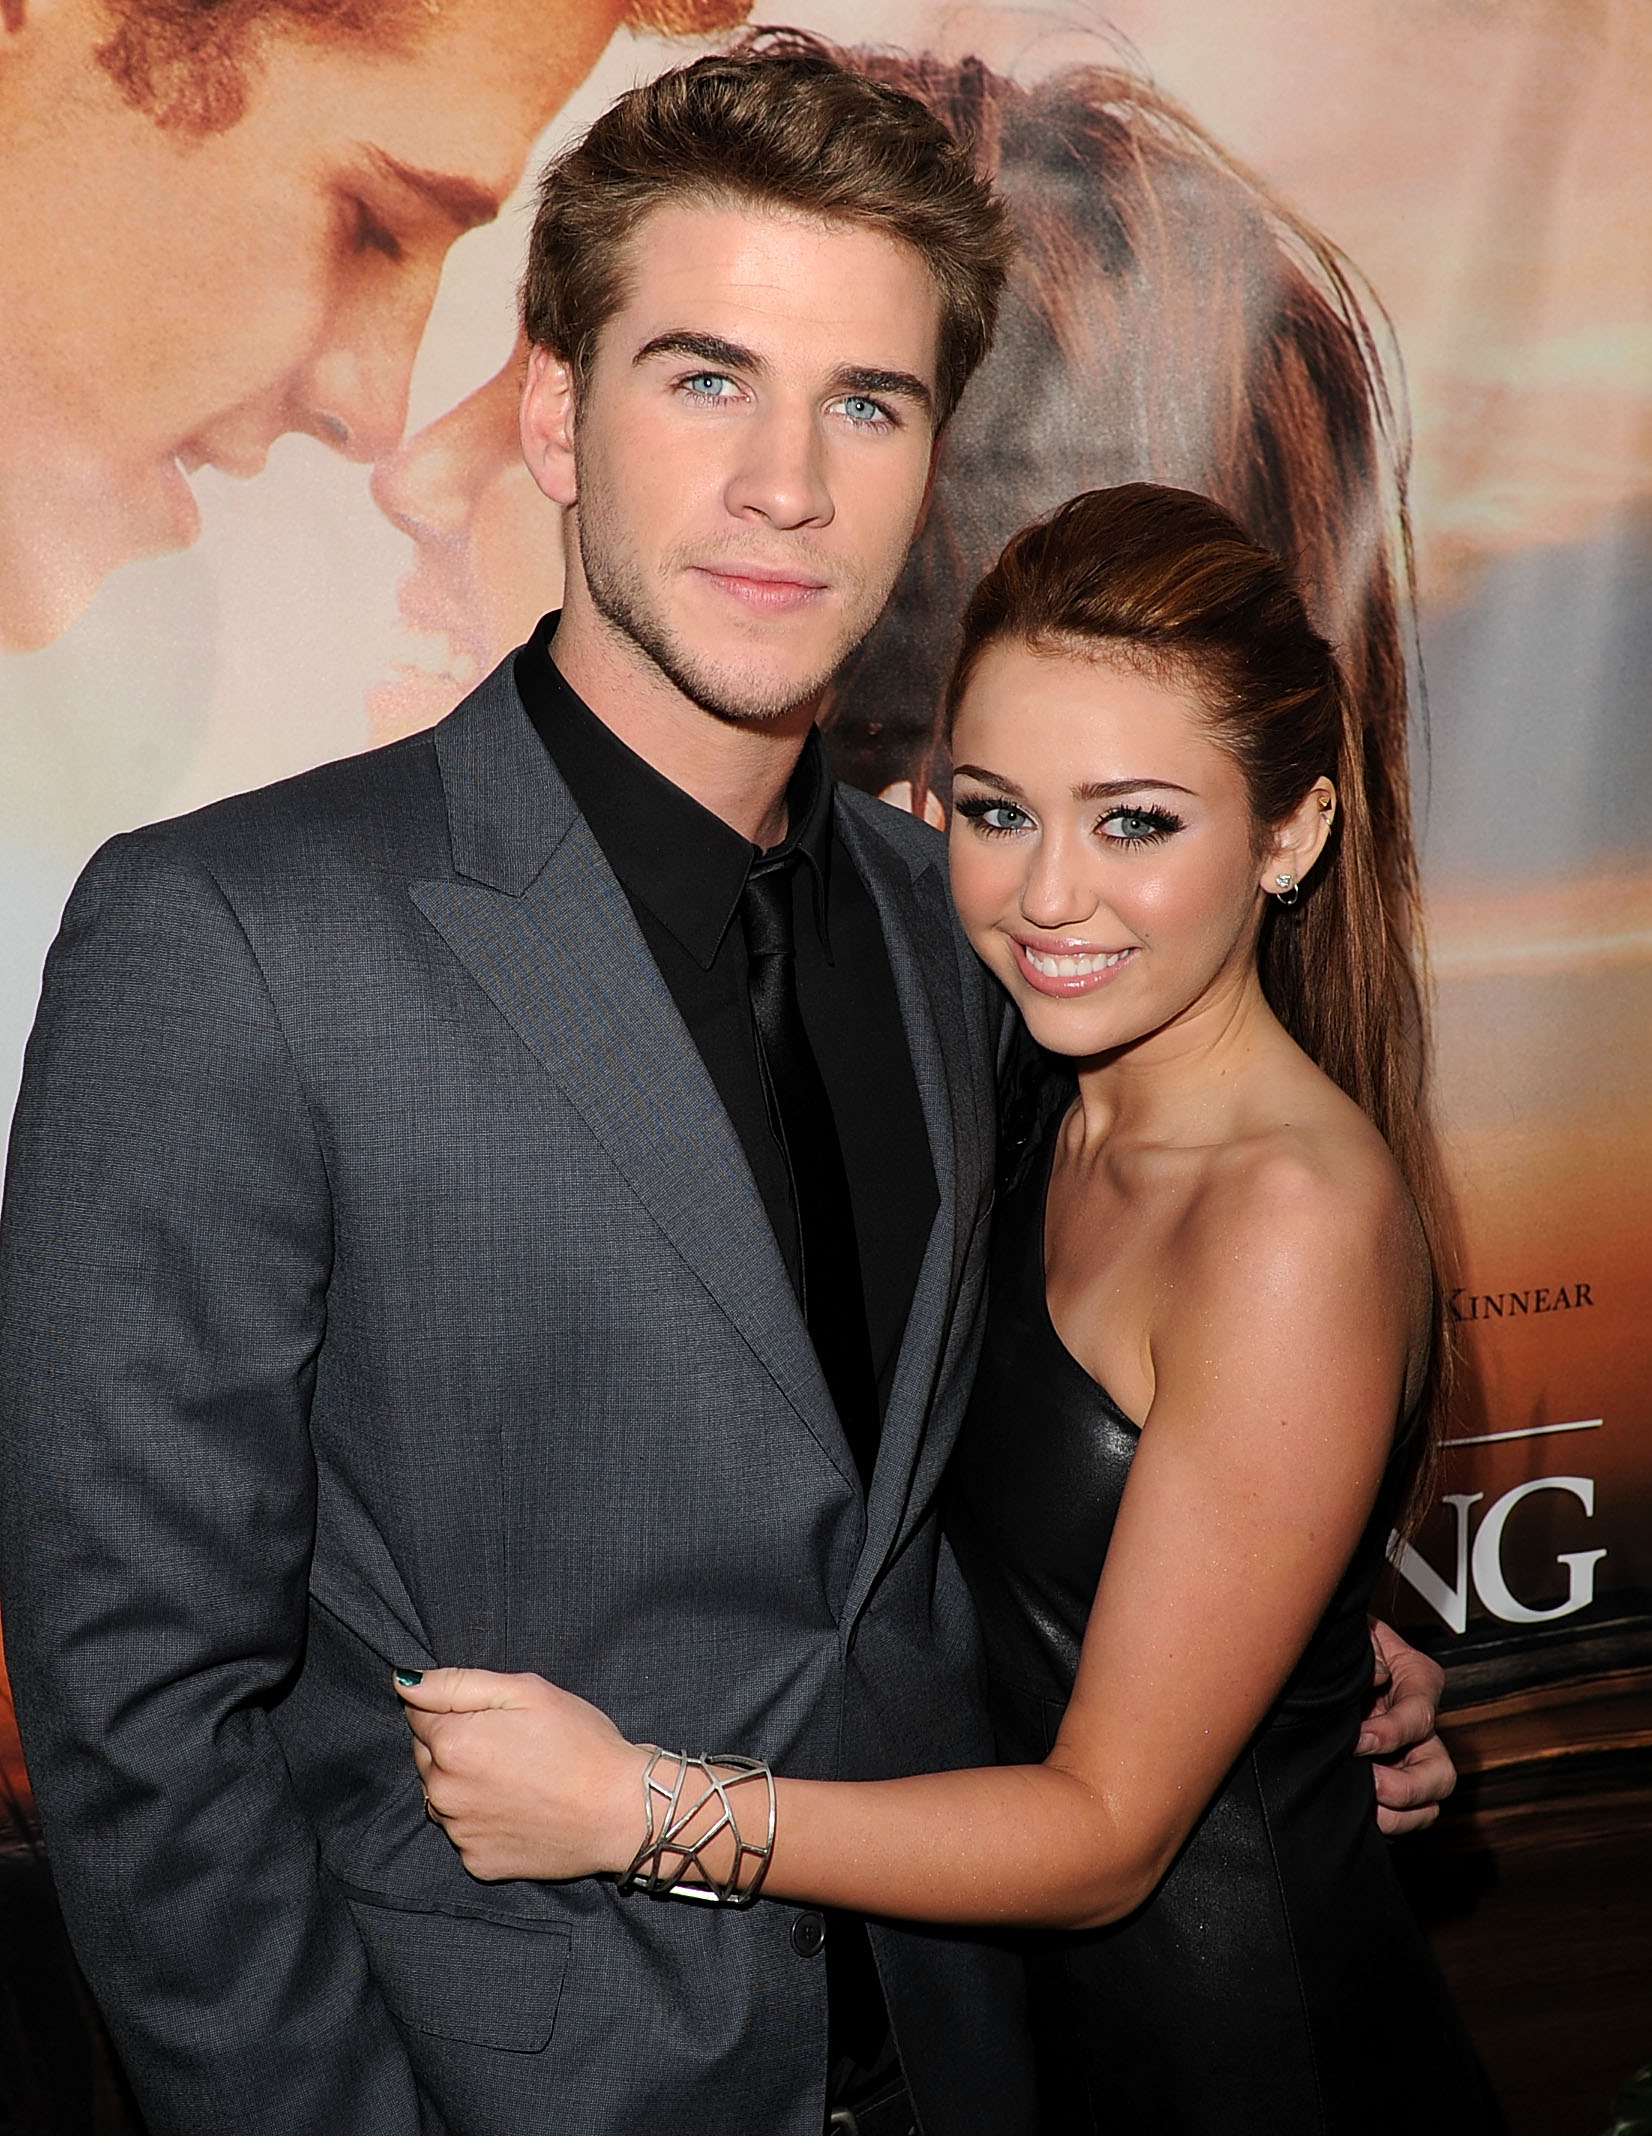 Miley Cyrus & Liam Hemsworth Had 'Magic' Between Them While Filming